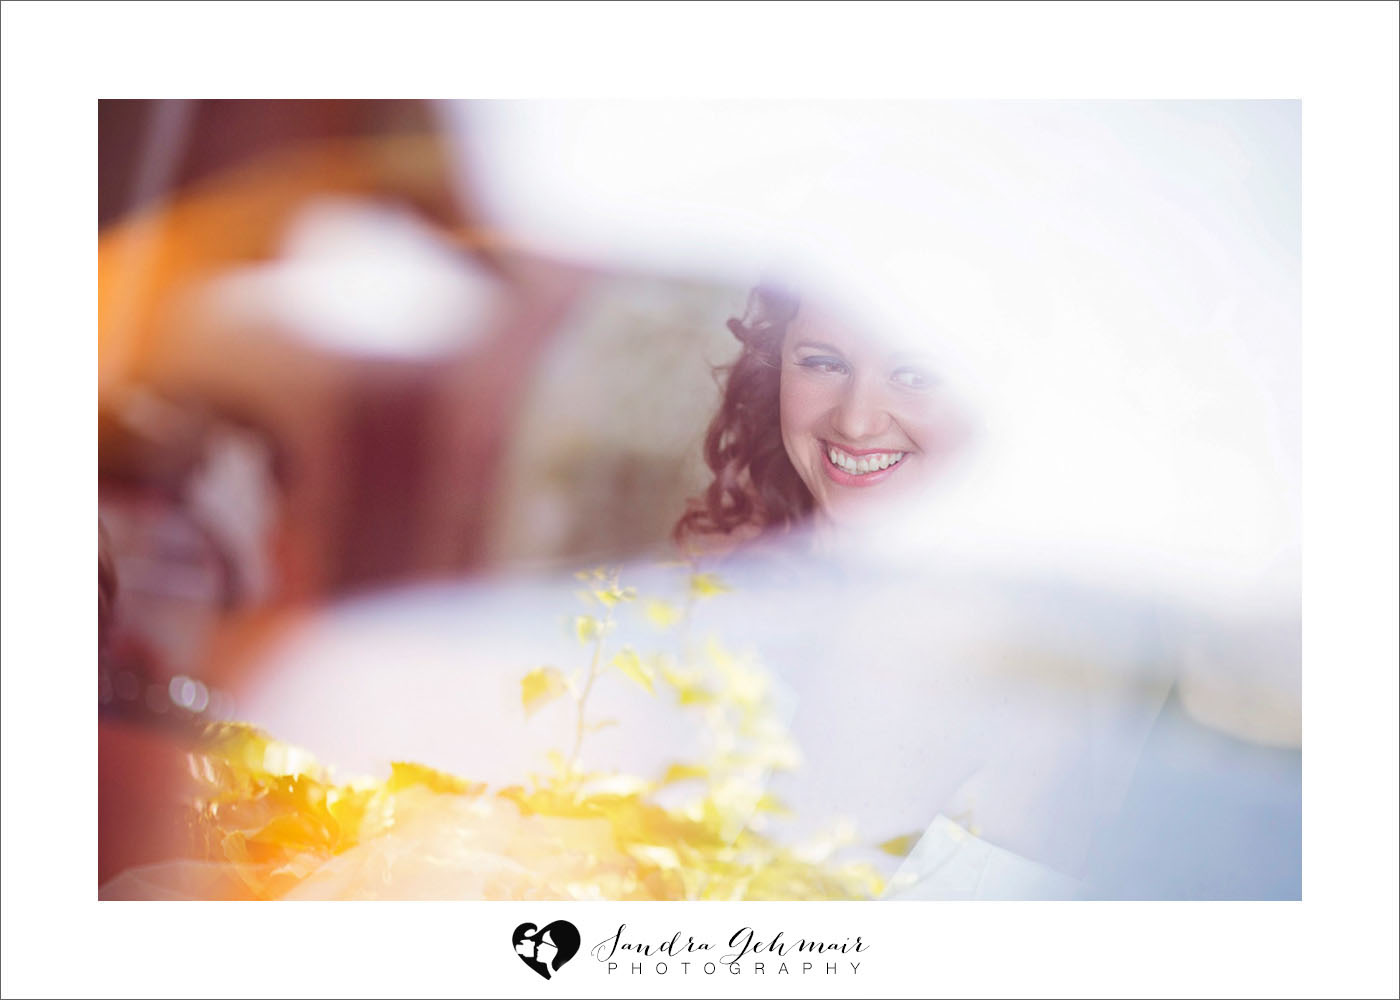 006_heiraten_am_see_spitzvilla_sandra_gehmair